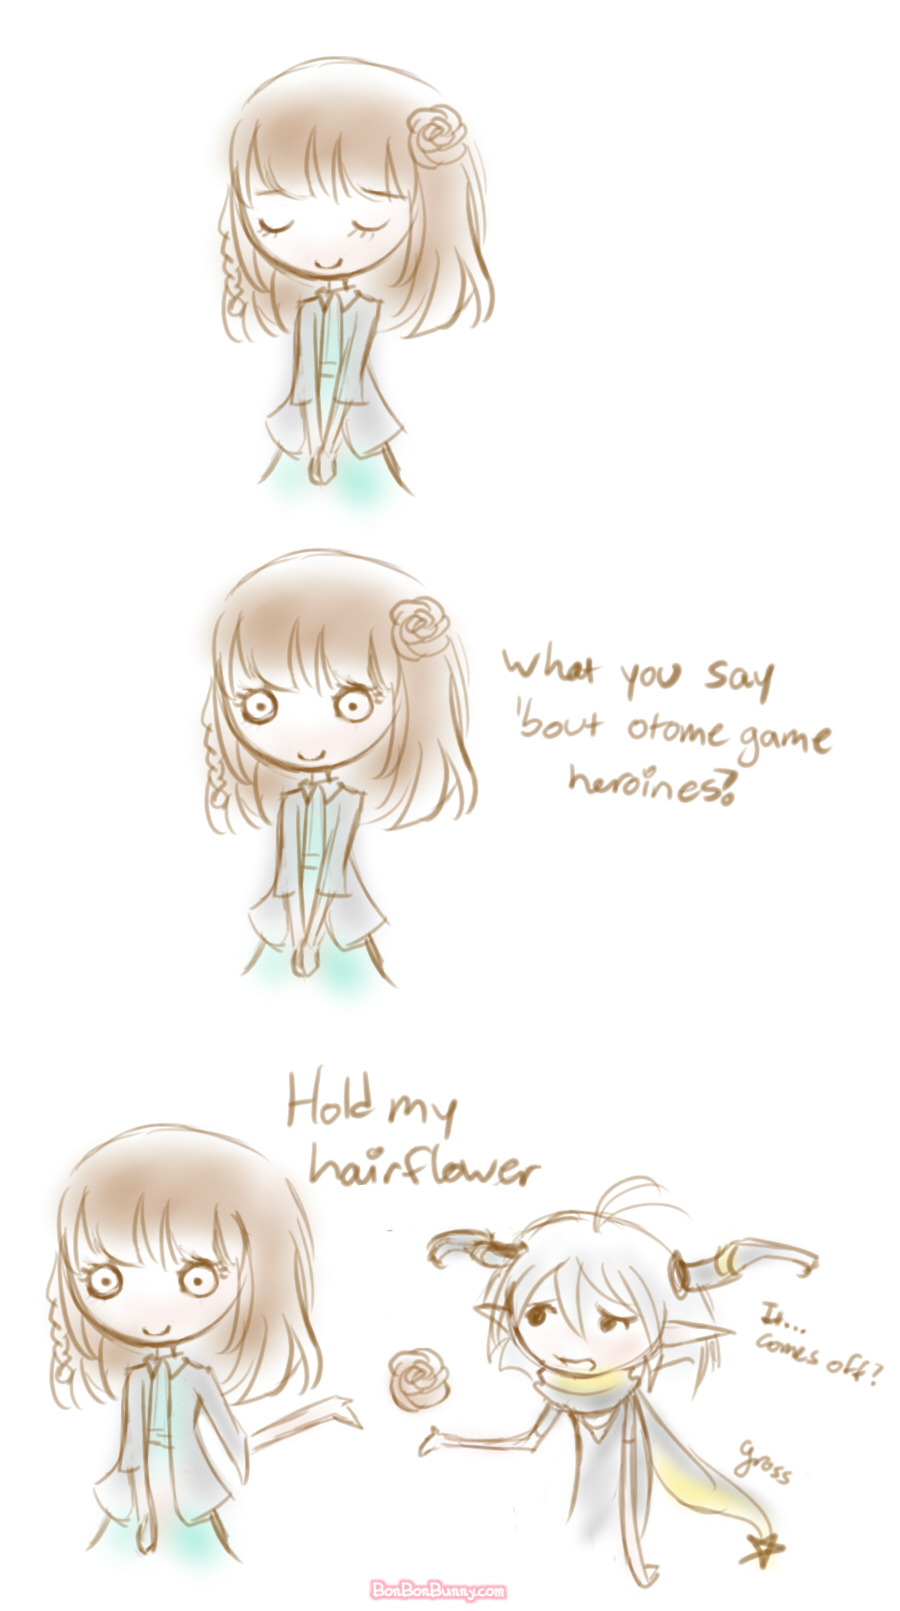 "bonbonbunny:  In which the Heroine's hairstyle is flipped so the joke is relevant. (◡‿◡✿)(ʘ‿ʘ✿) ""what you say 'bout me""(ʘ‿ʘ)ノ✿ ""hold my flower""✿\(。-_-。) ""Kick his ass, baby.  I got yo flower."" Bonus!"